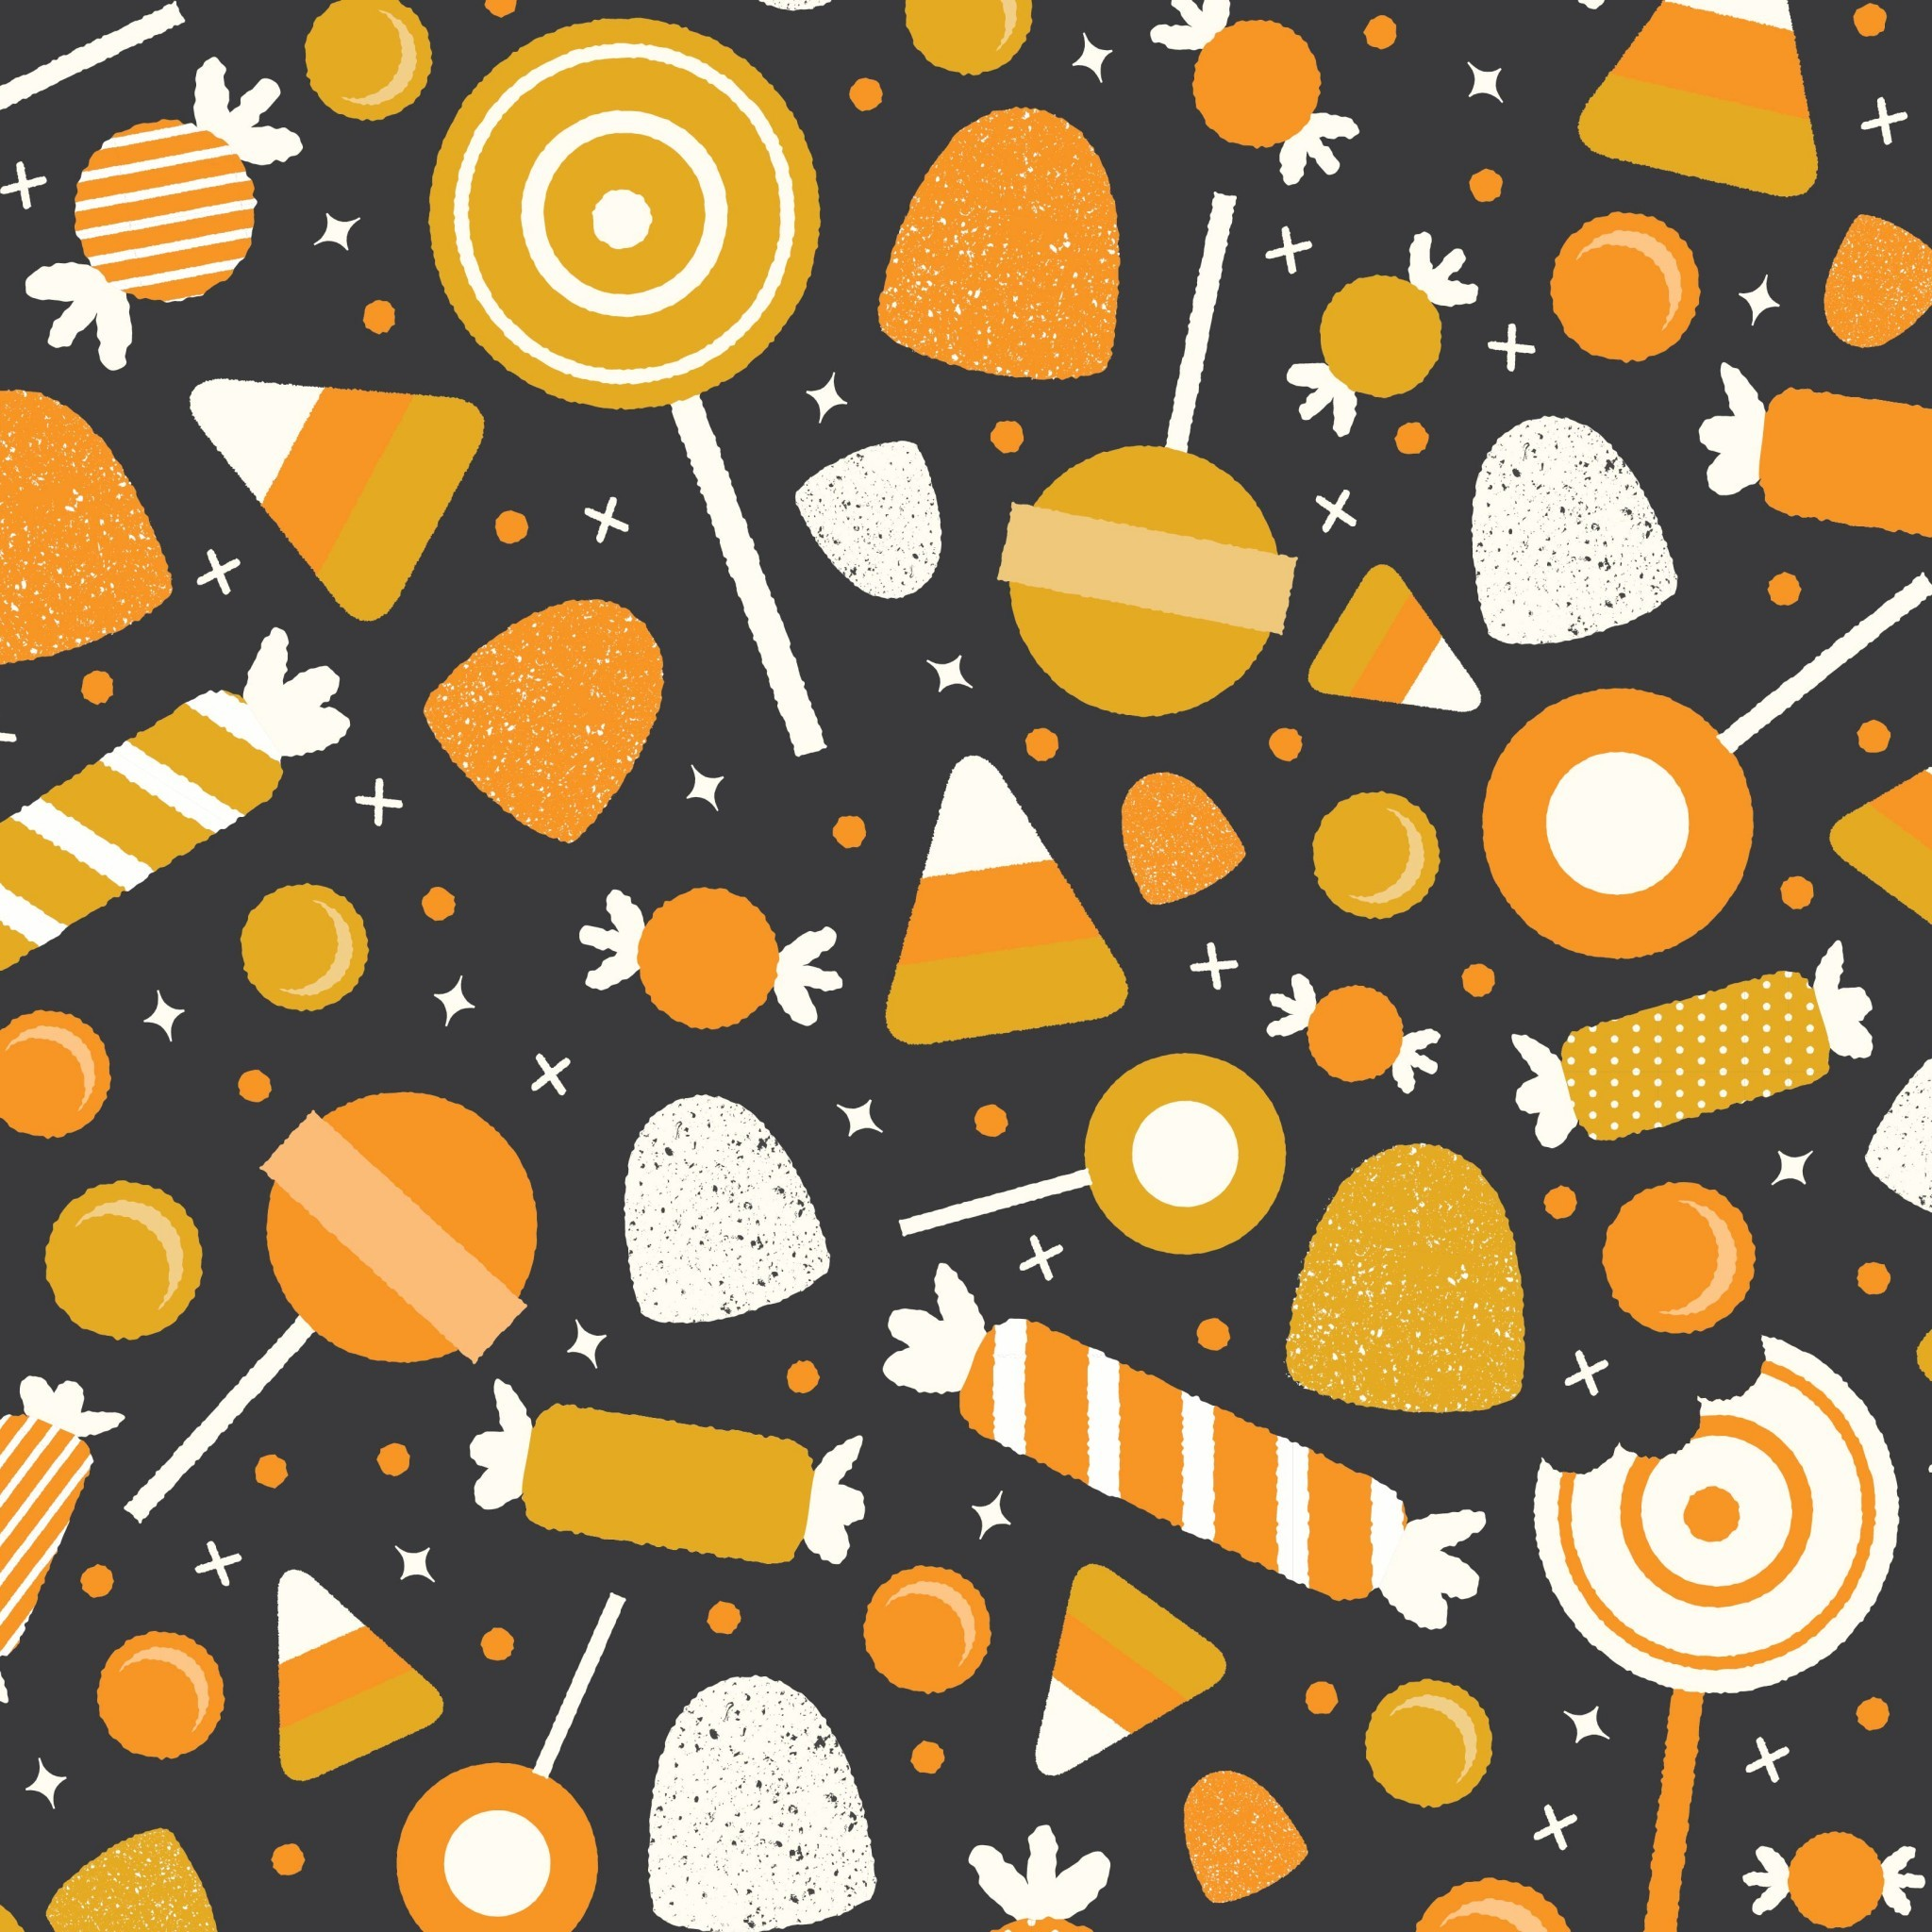 2048x2048 Halloween candy. Tap image for more fun pattern wallpapers for ... Halloween  Candy Tap Image For More Fun Pattern Wallpapers For